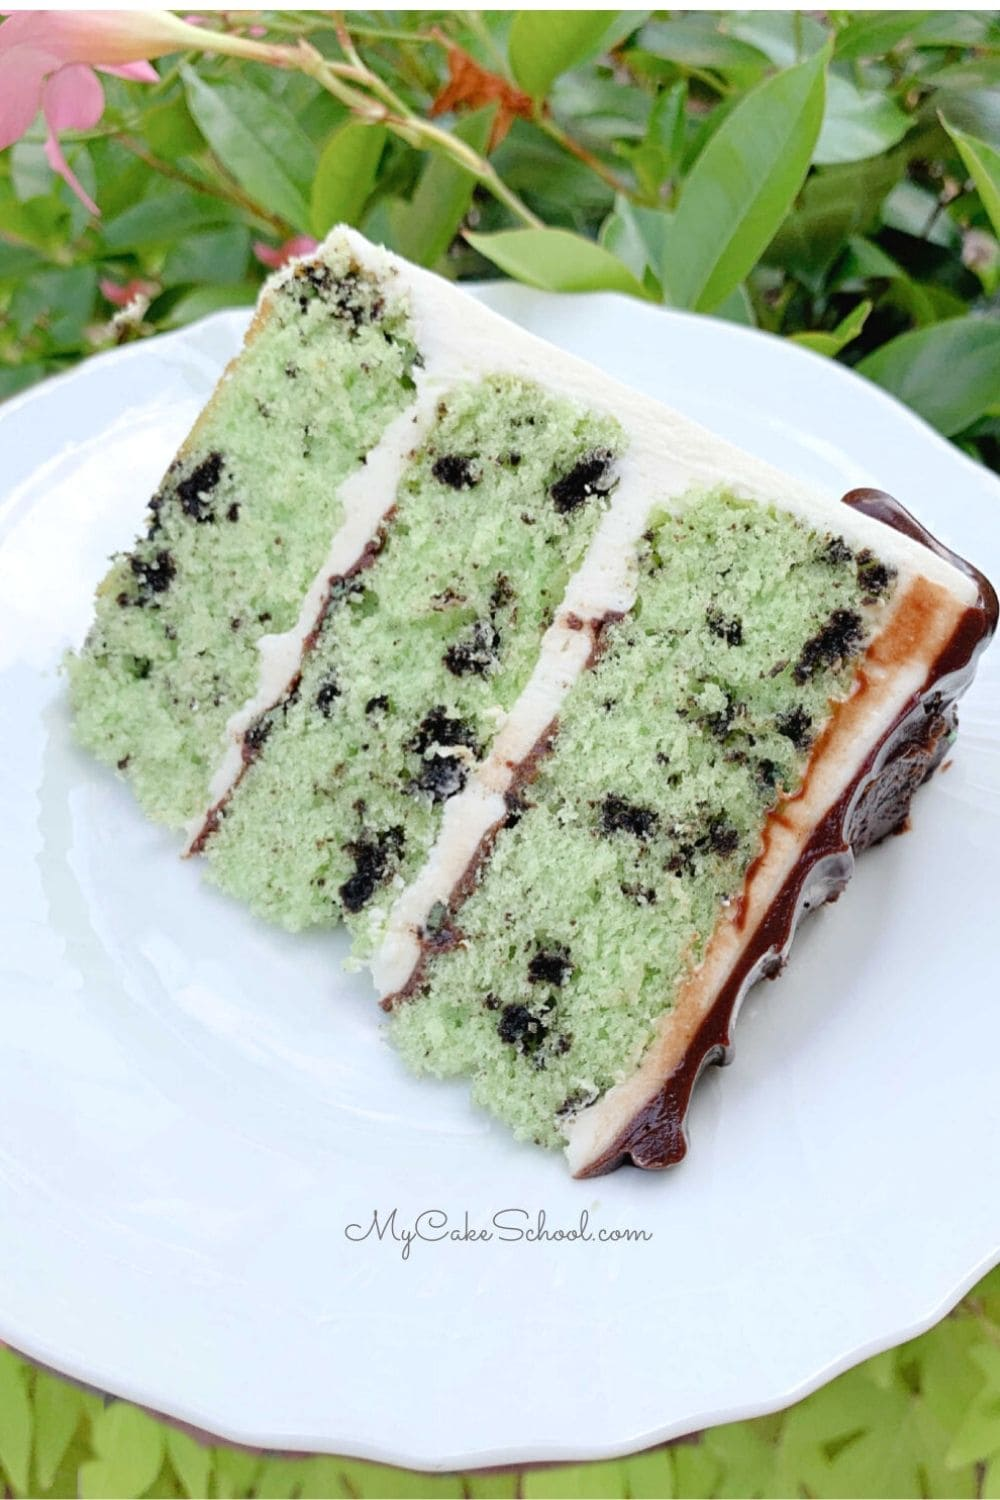 Mint Oreo Layer Cake- This homemade layer cake is so moist and flavorful!